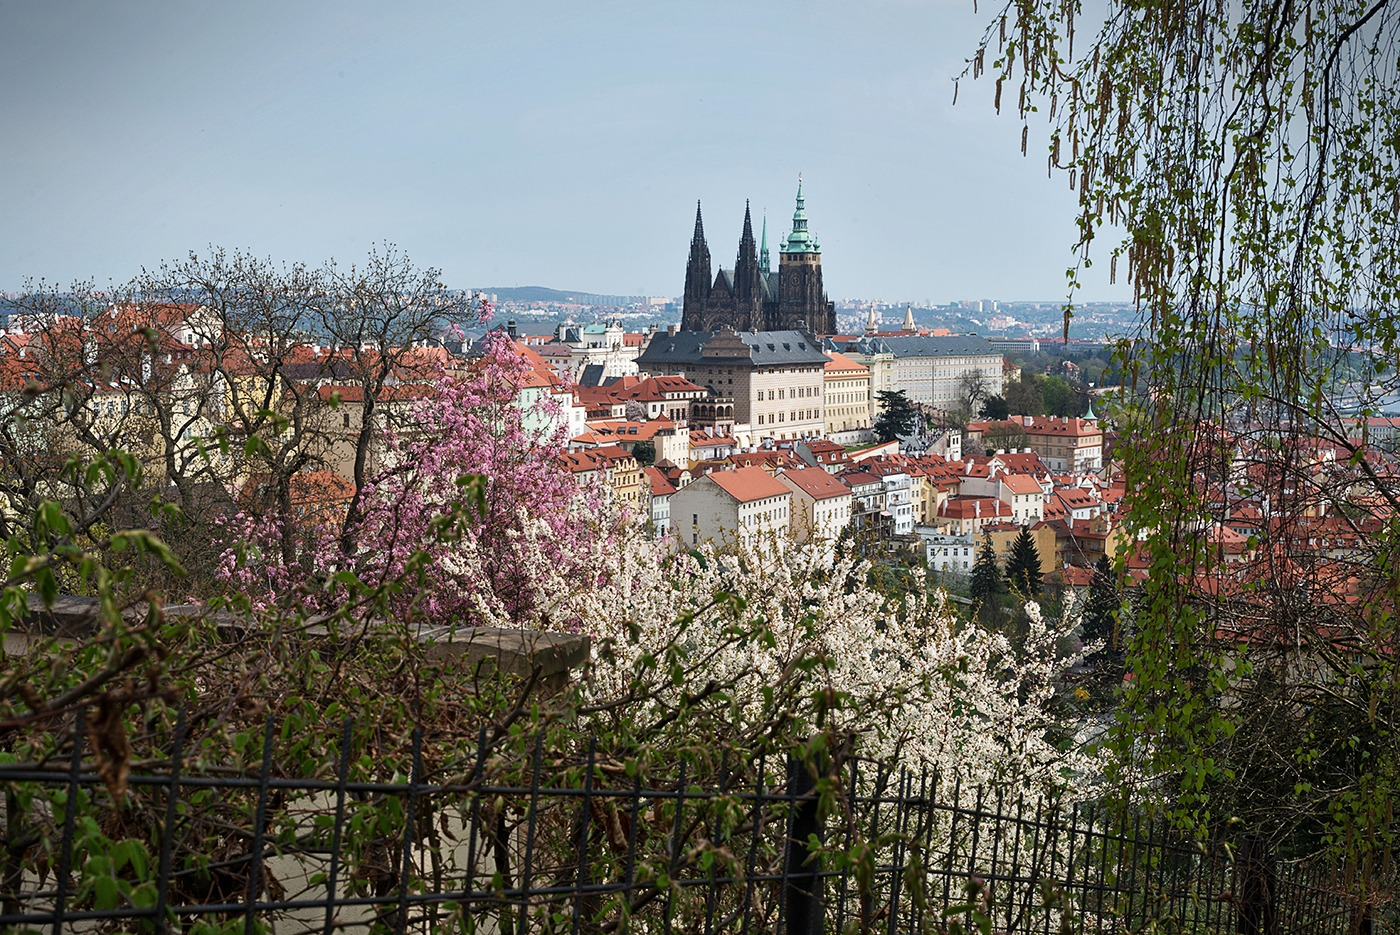 Looking from above over the castle of Prague